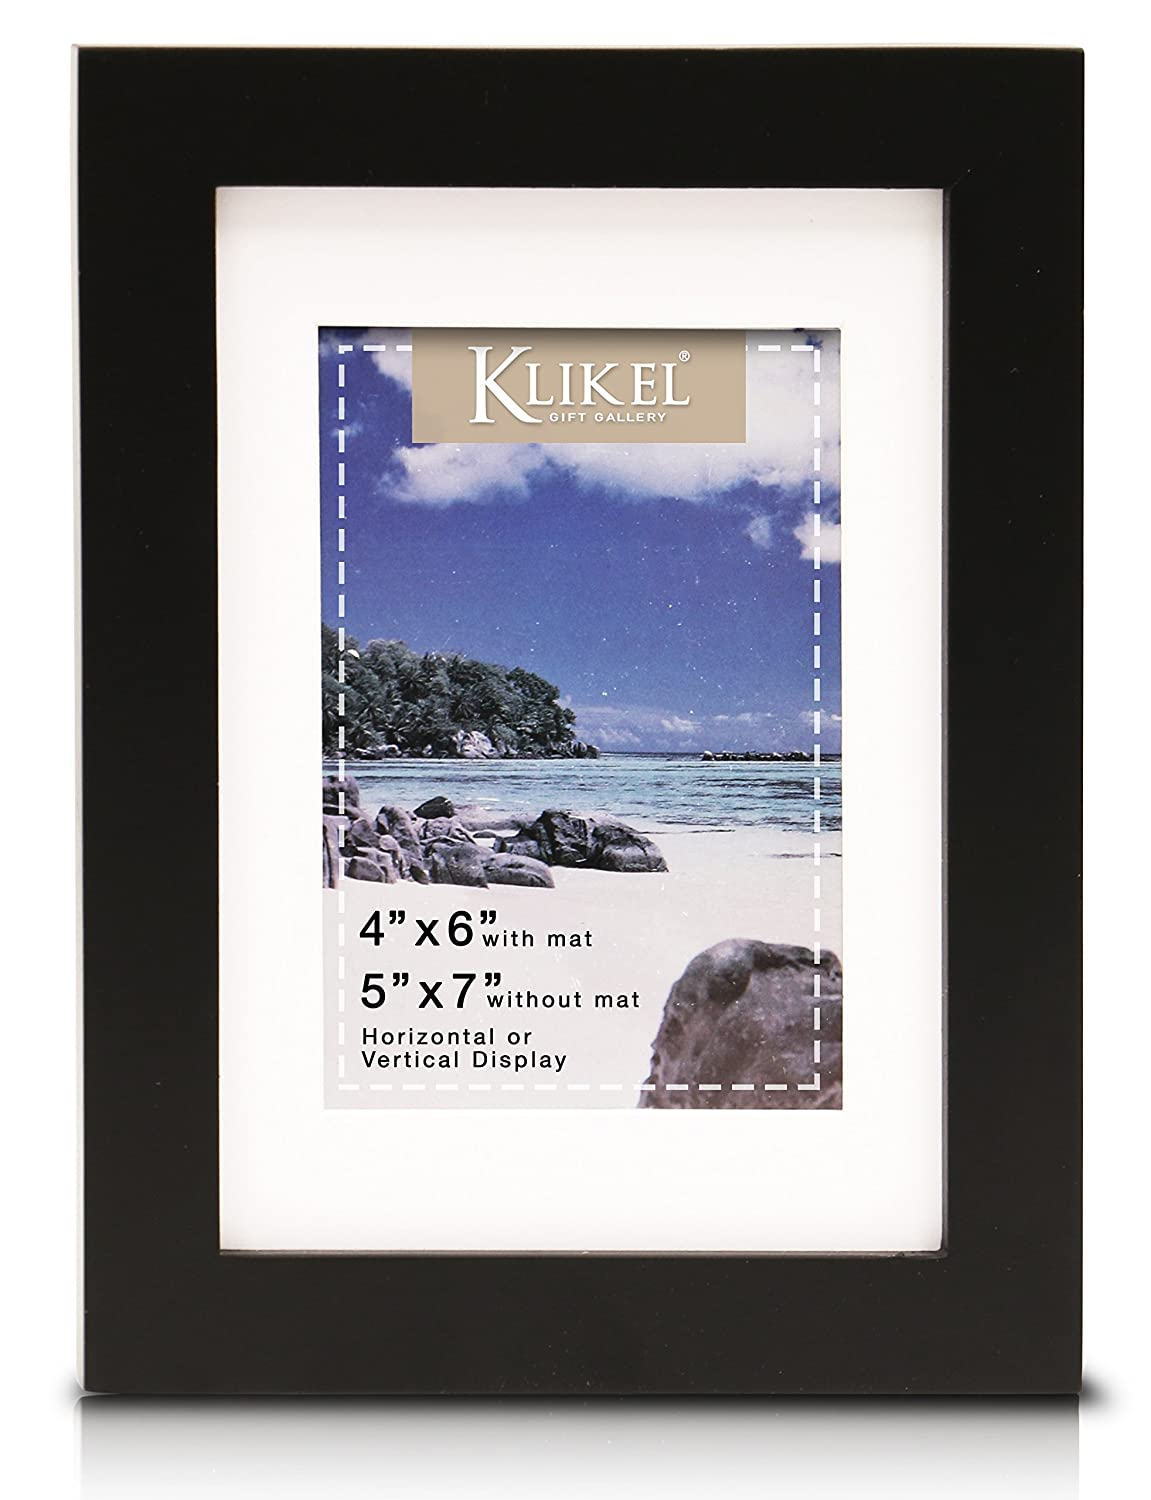 Klikel 4 X 6 Picture Frame | Black Wooden Matted Wall Frame | 5x7 Frame Without Mat | Set of 2 Wall Hanging and Table Standing Picture Frames